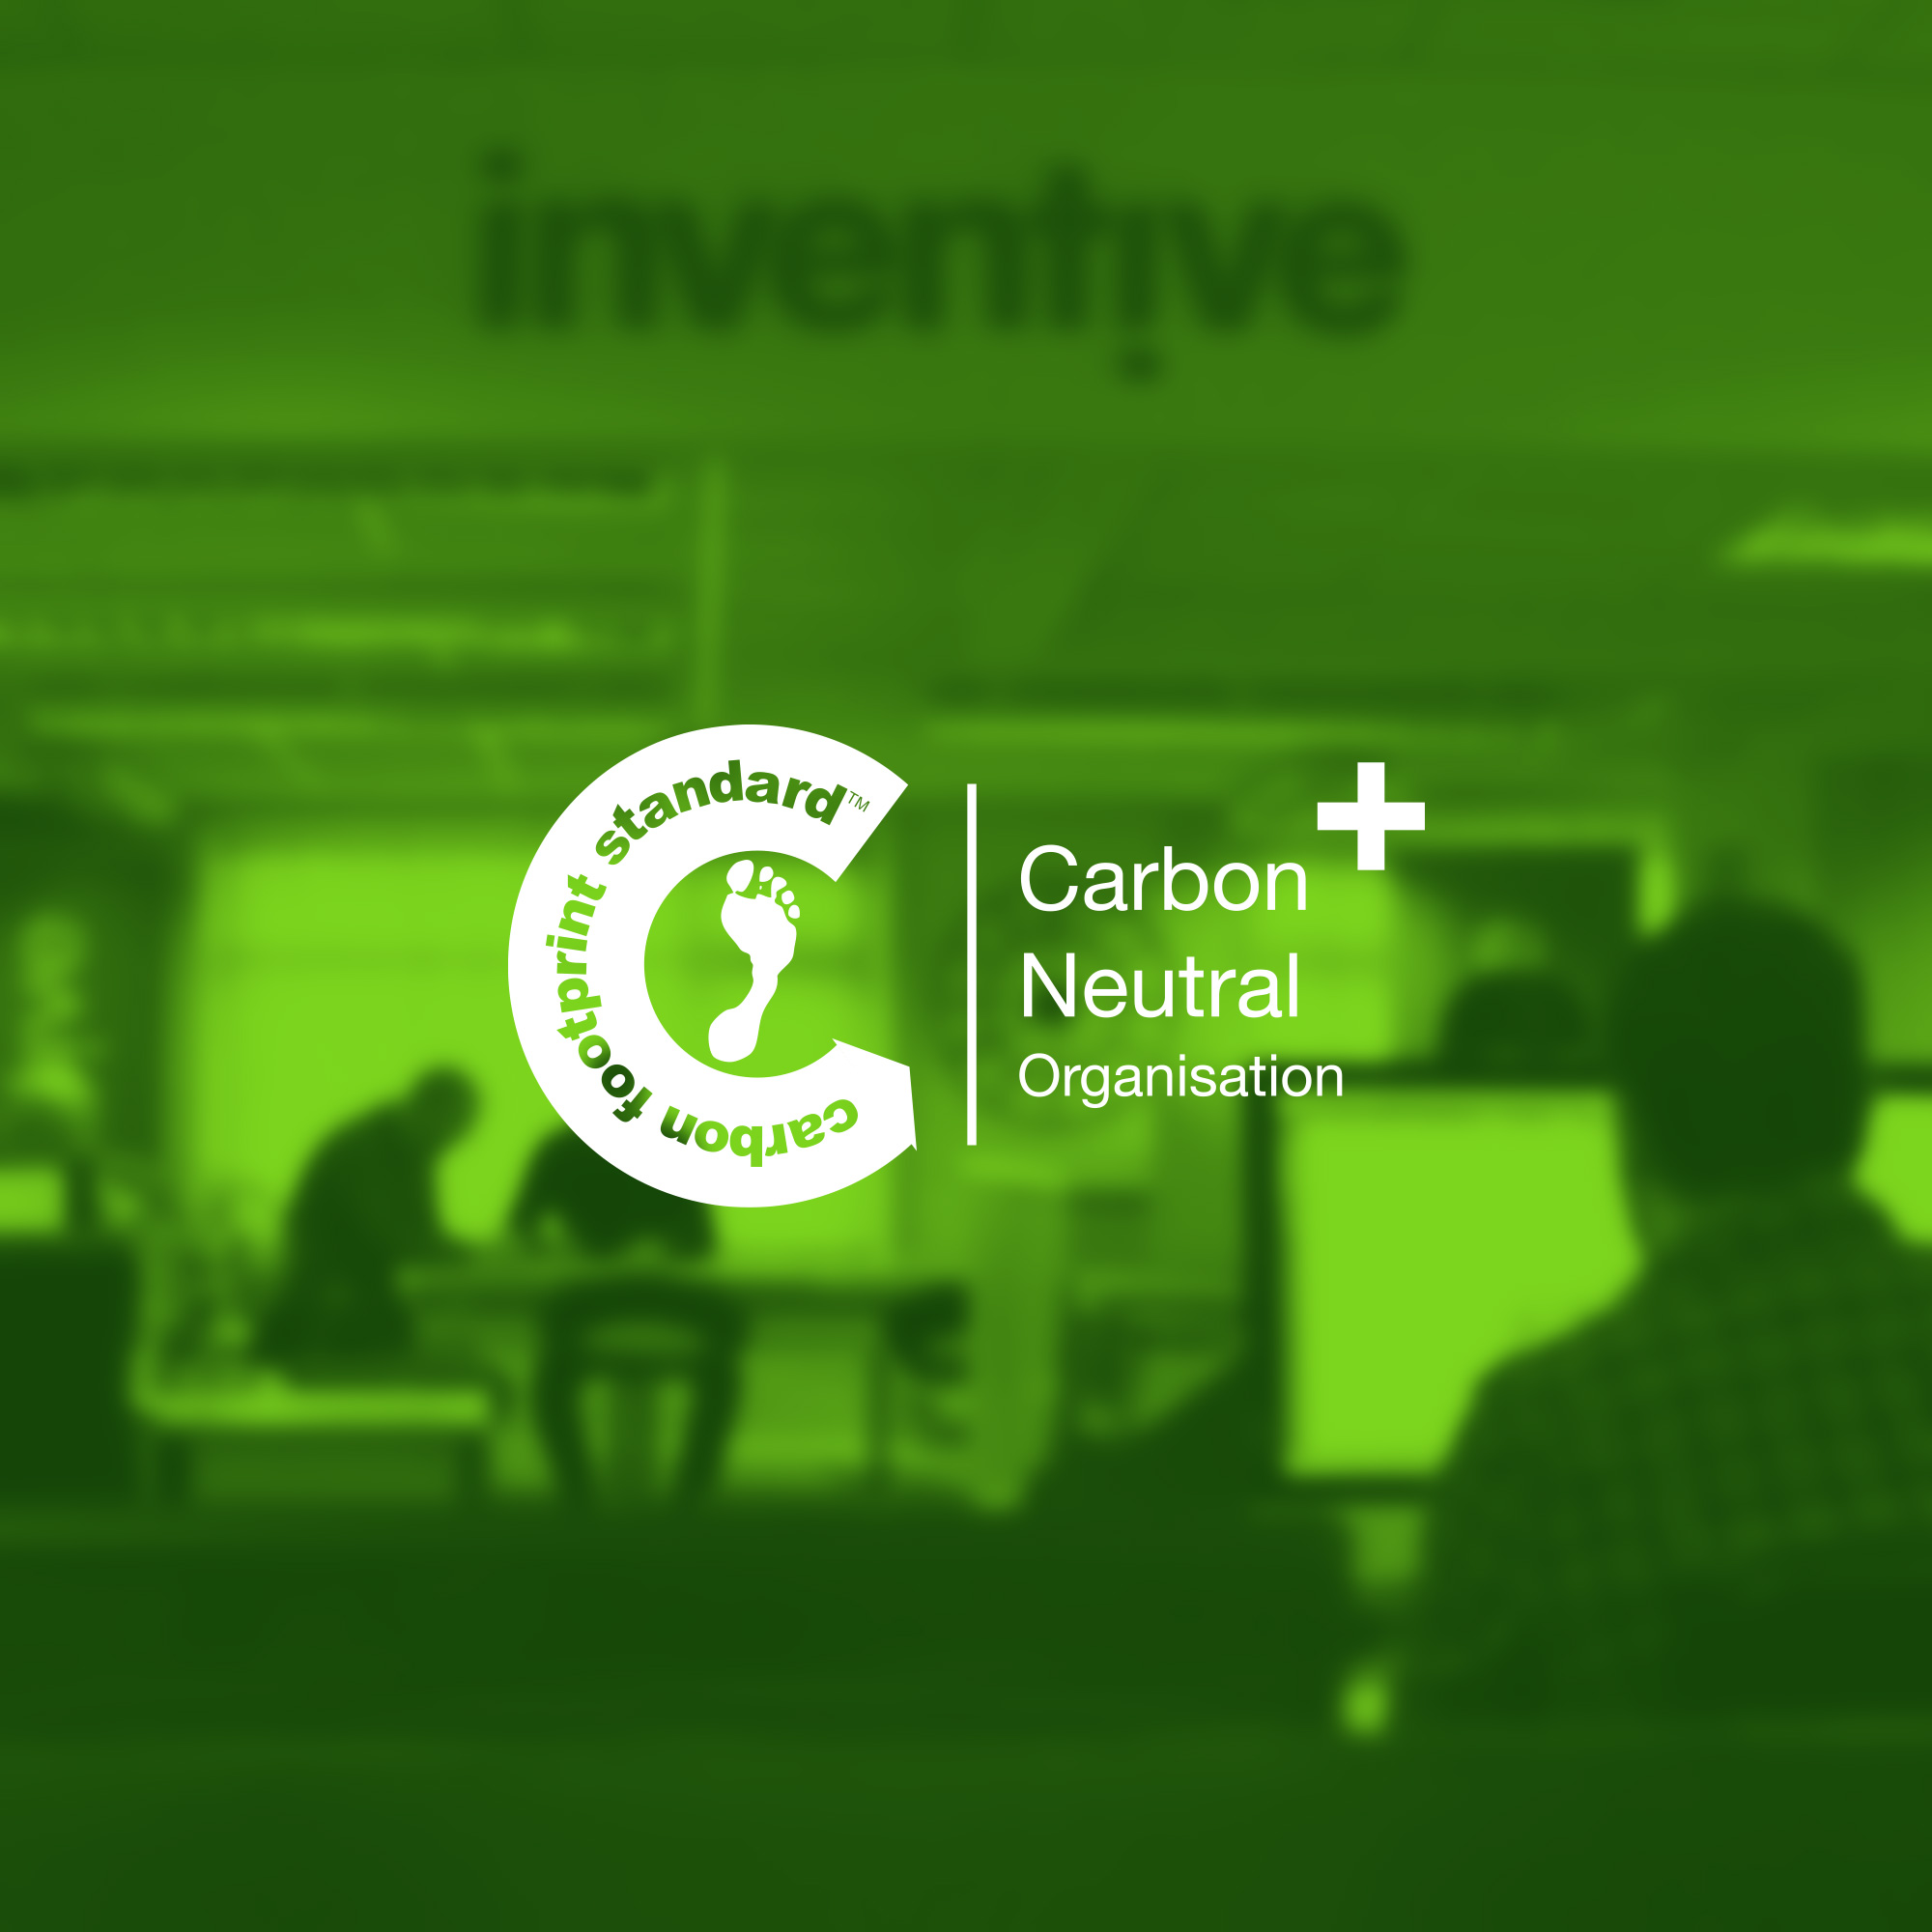 Carbon Neutral + Organisation